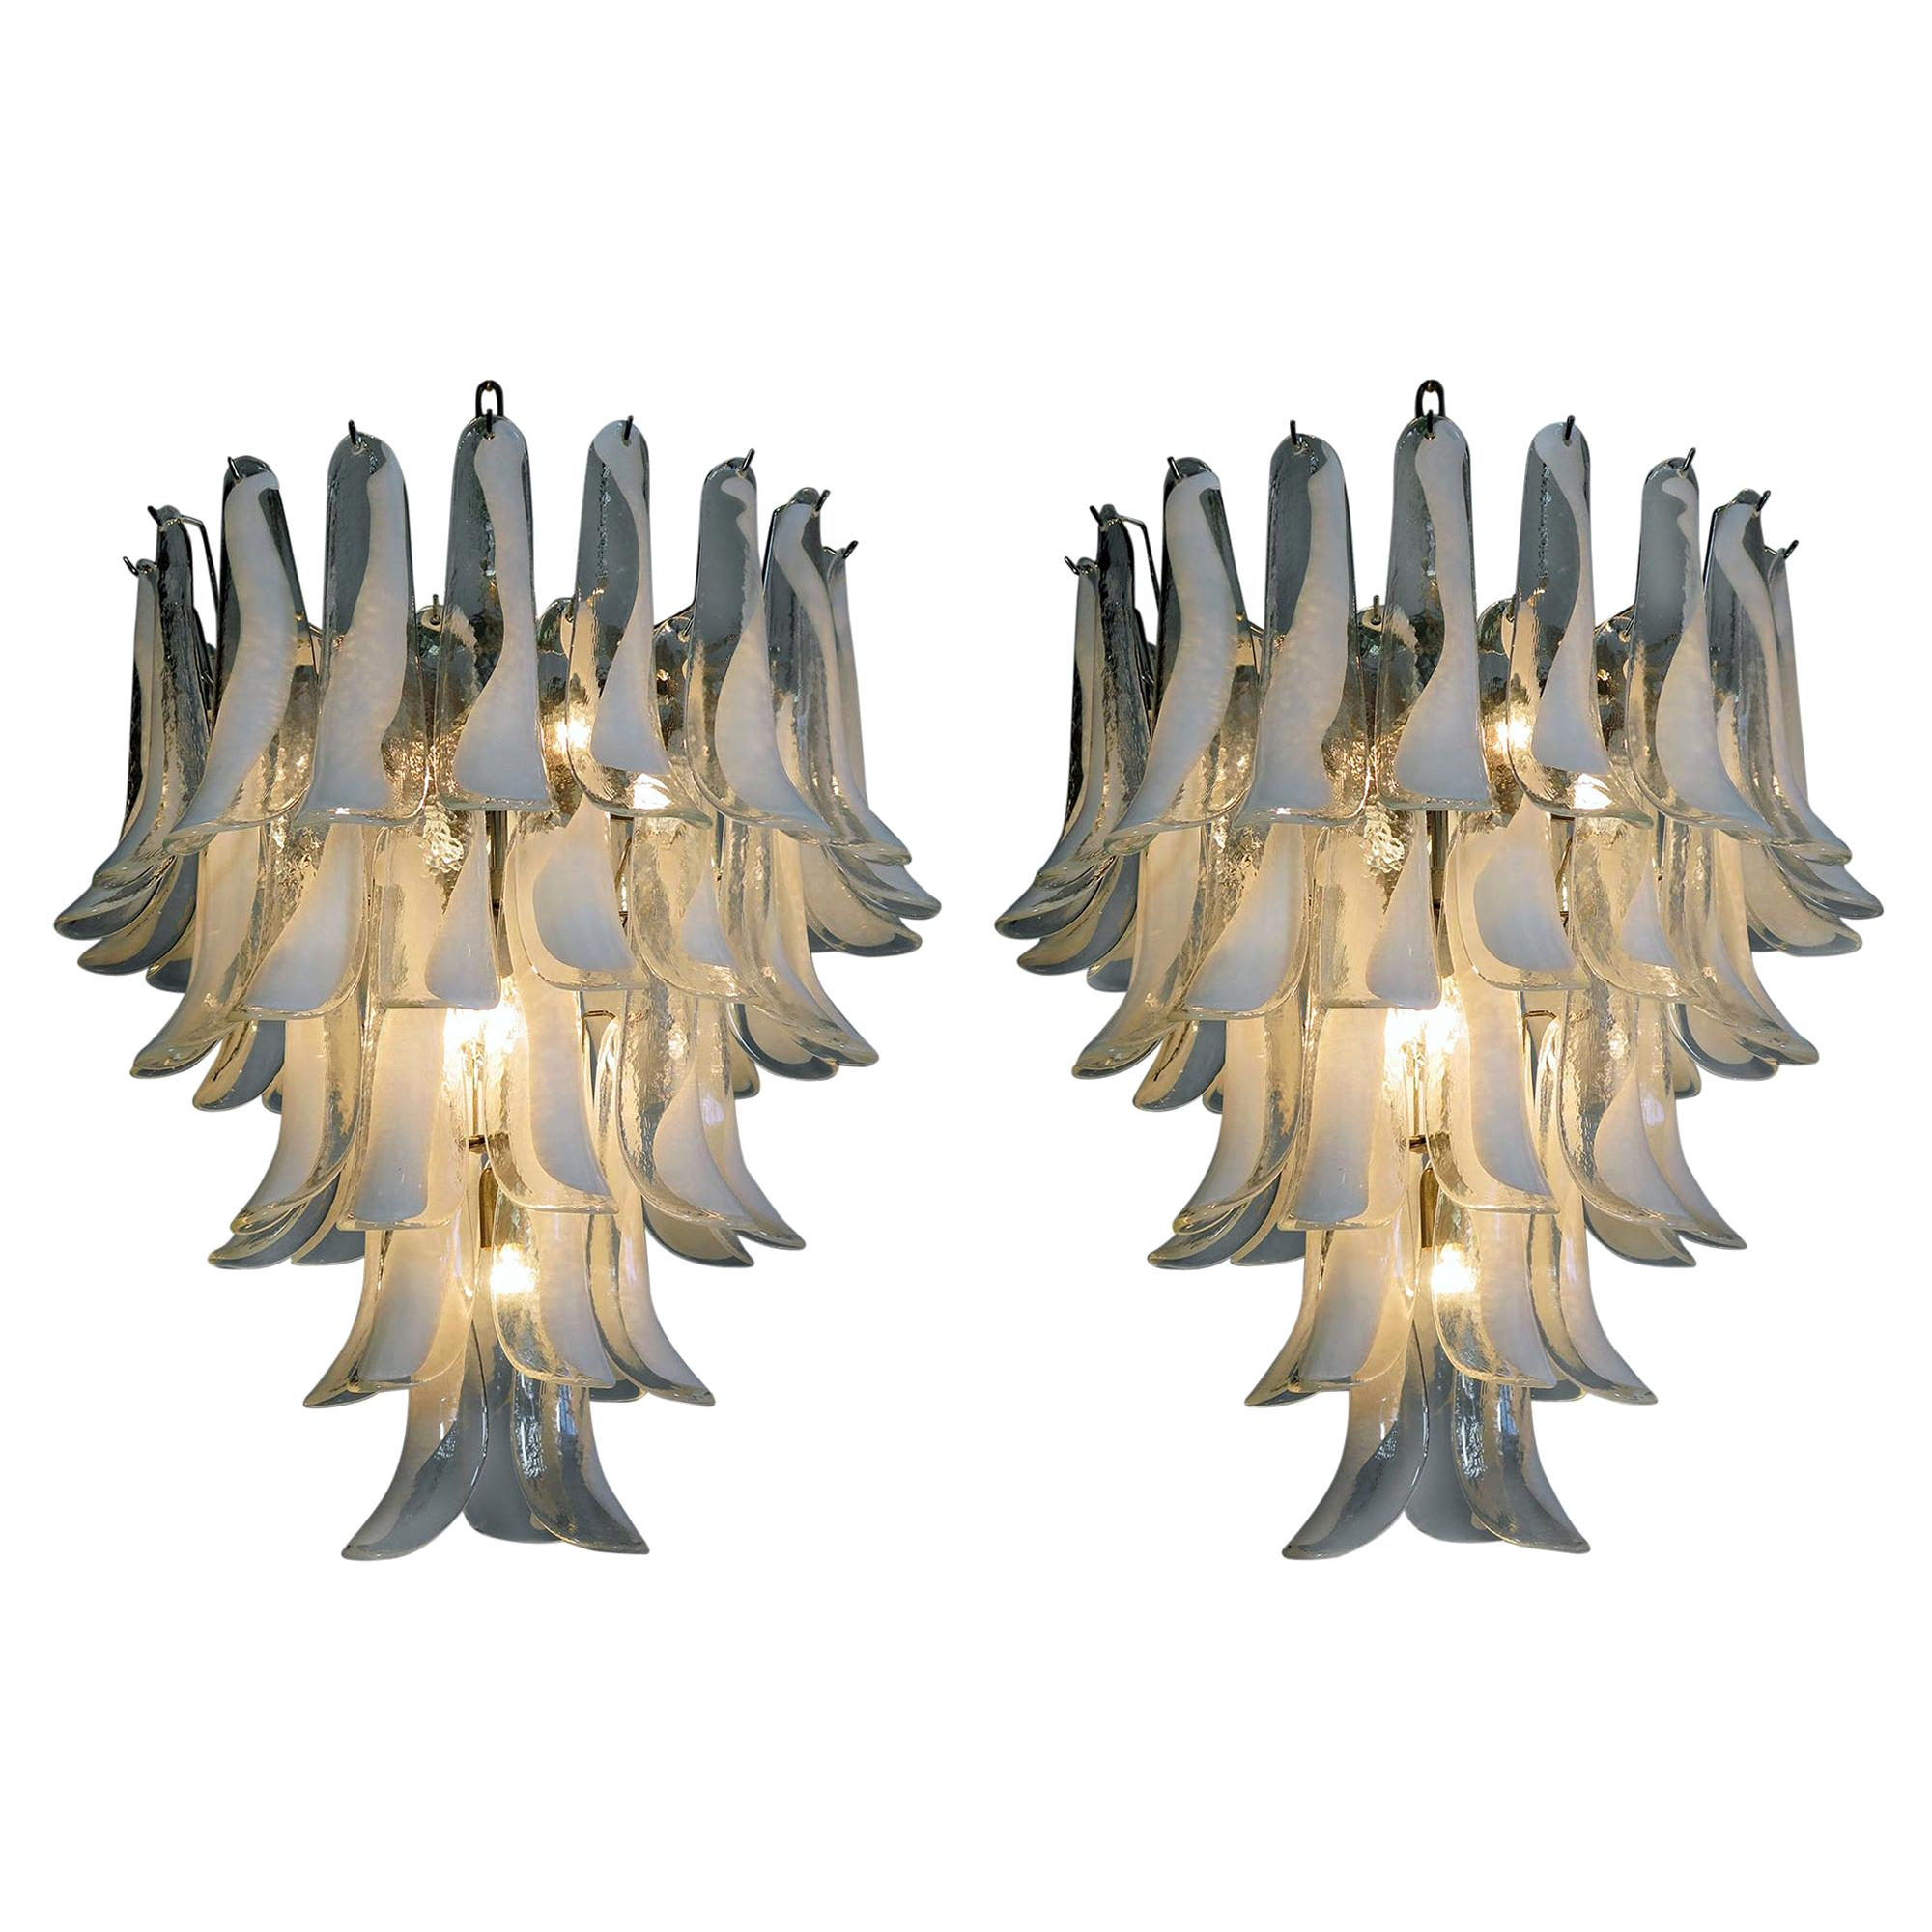 Pair of Huge Italian Vintage Murano Chandelier Made by 52 Glass Petals, 1970s